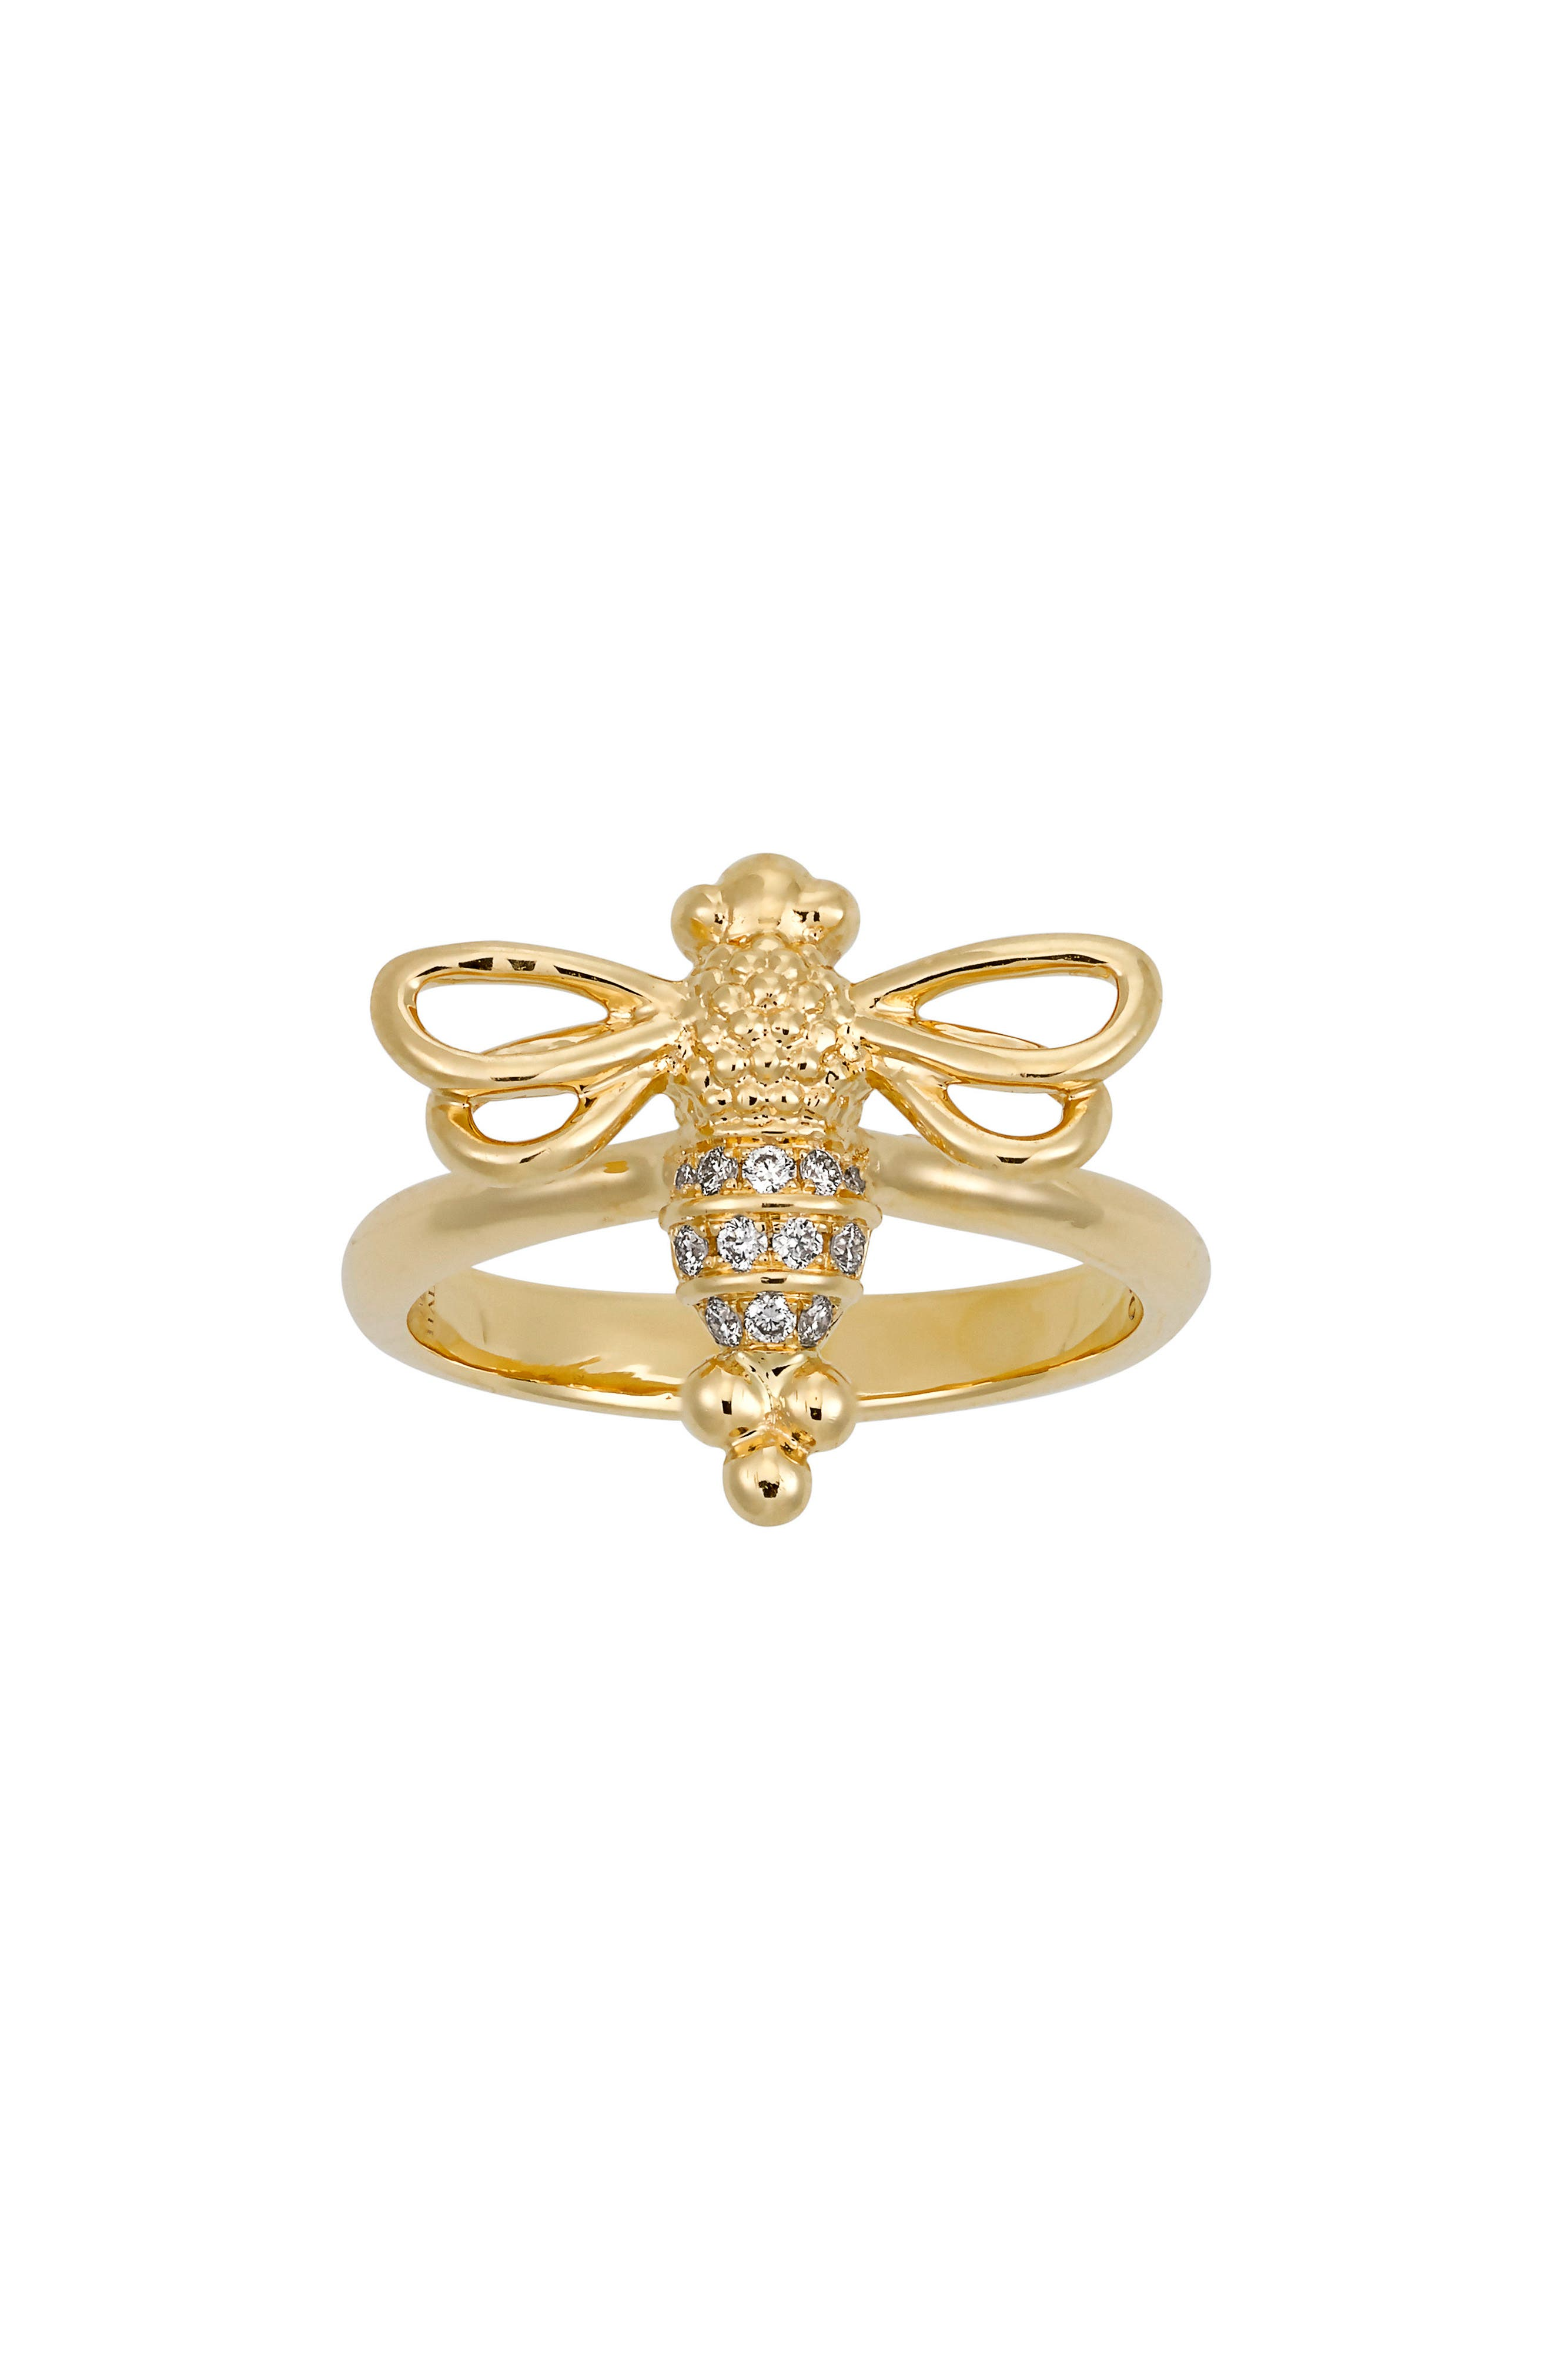 Temple St. Clair Diamond Pavé Bee Ring,                             Main thumbnail 1, color,                             YELLOW GOLD